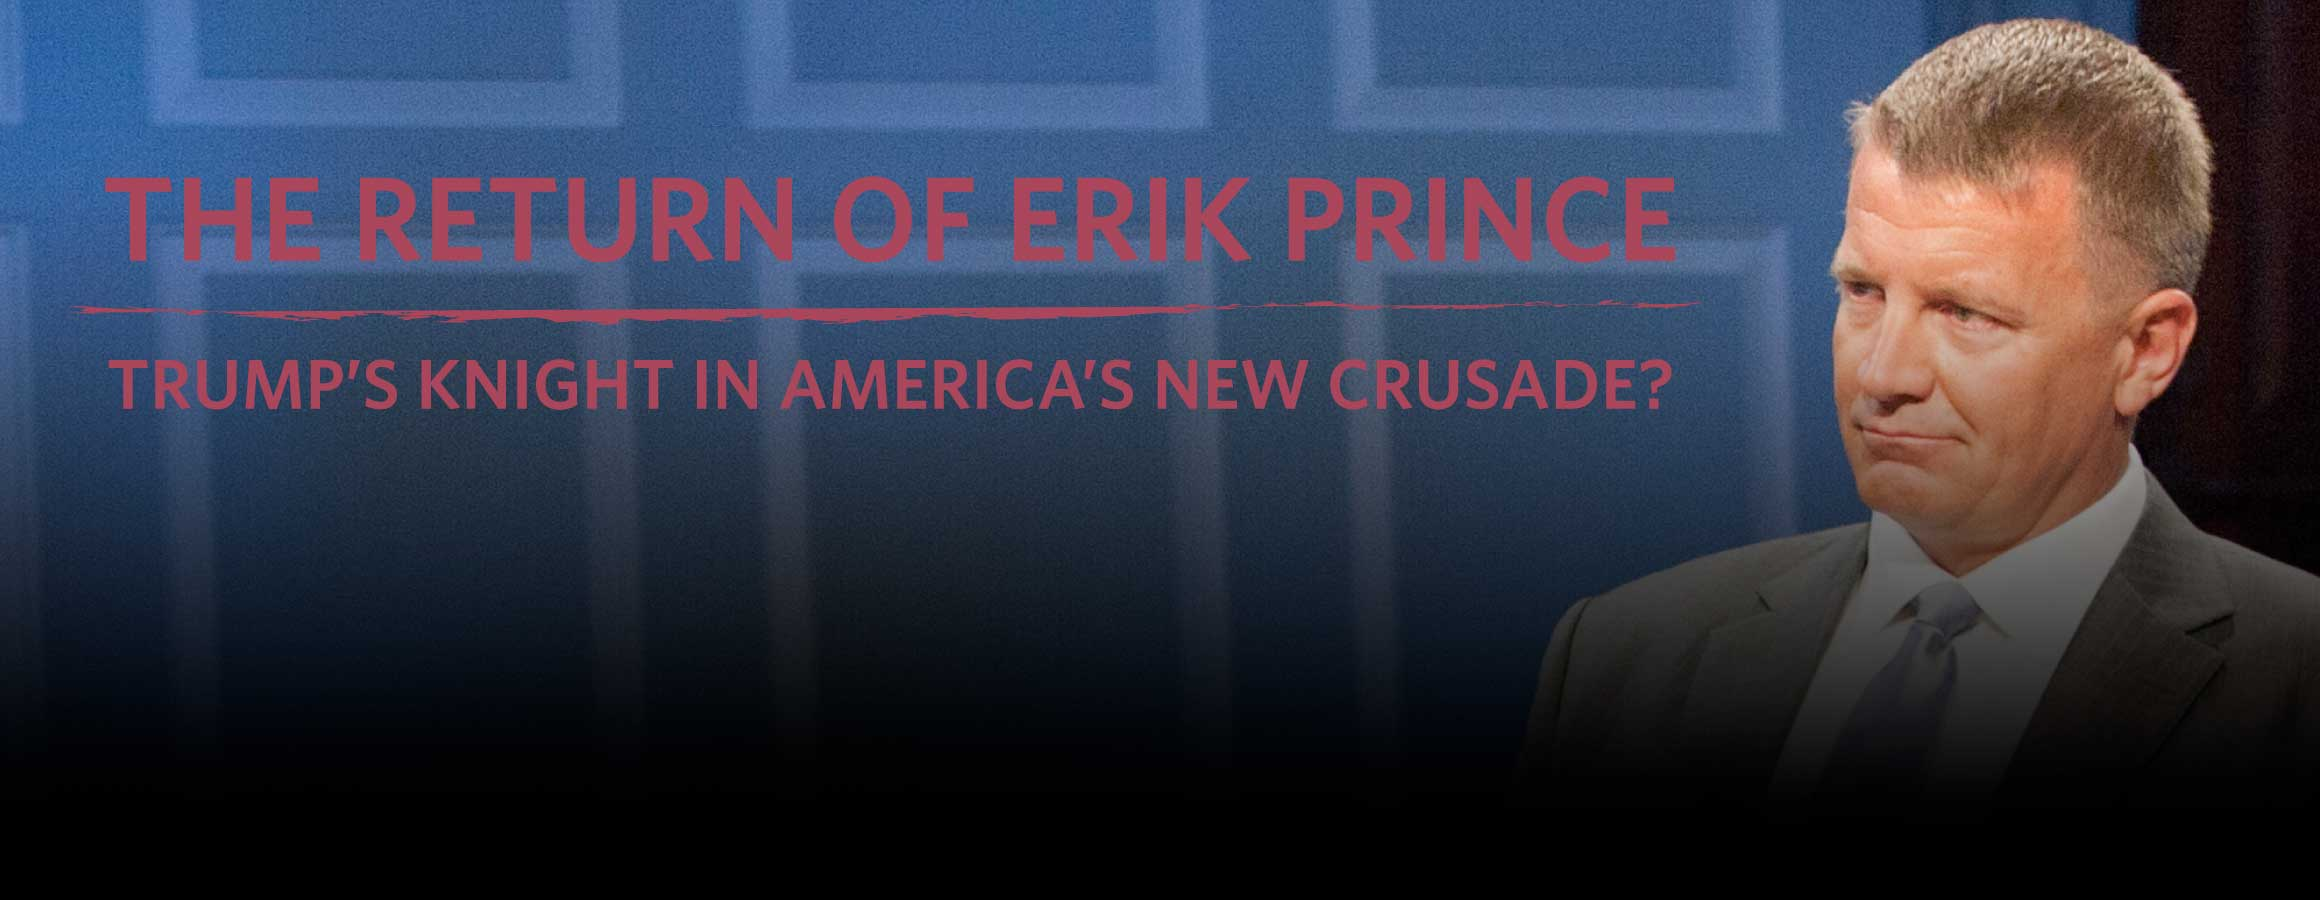 The Return of Erik Prince: Trump's Knight in America's New Crusade